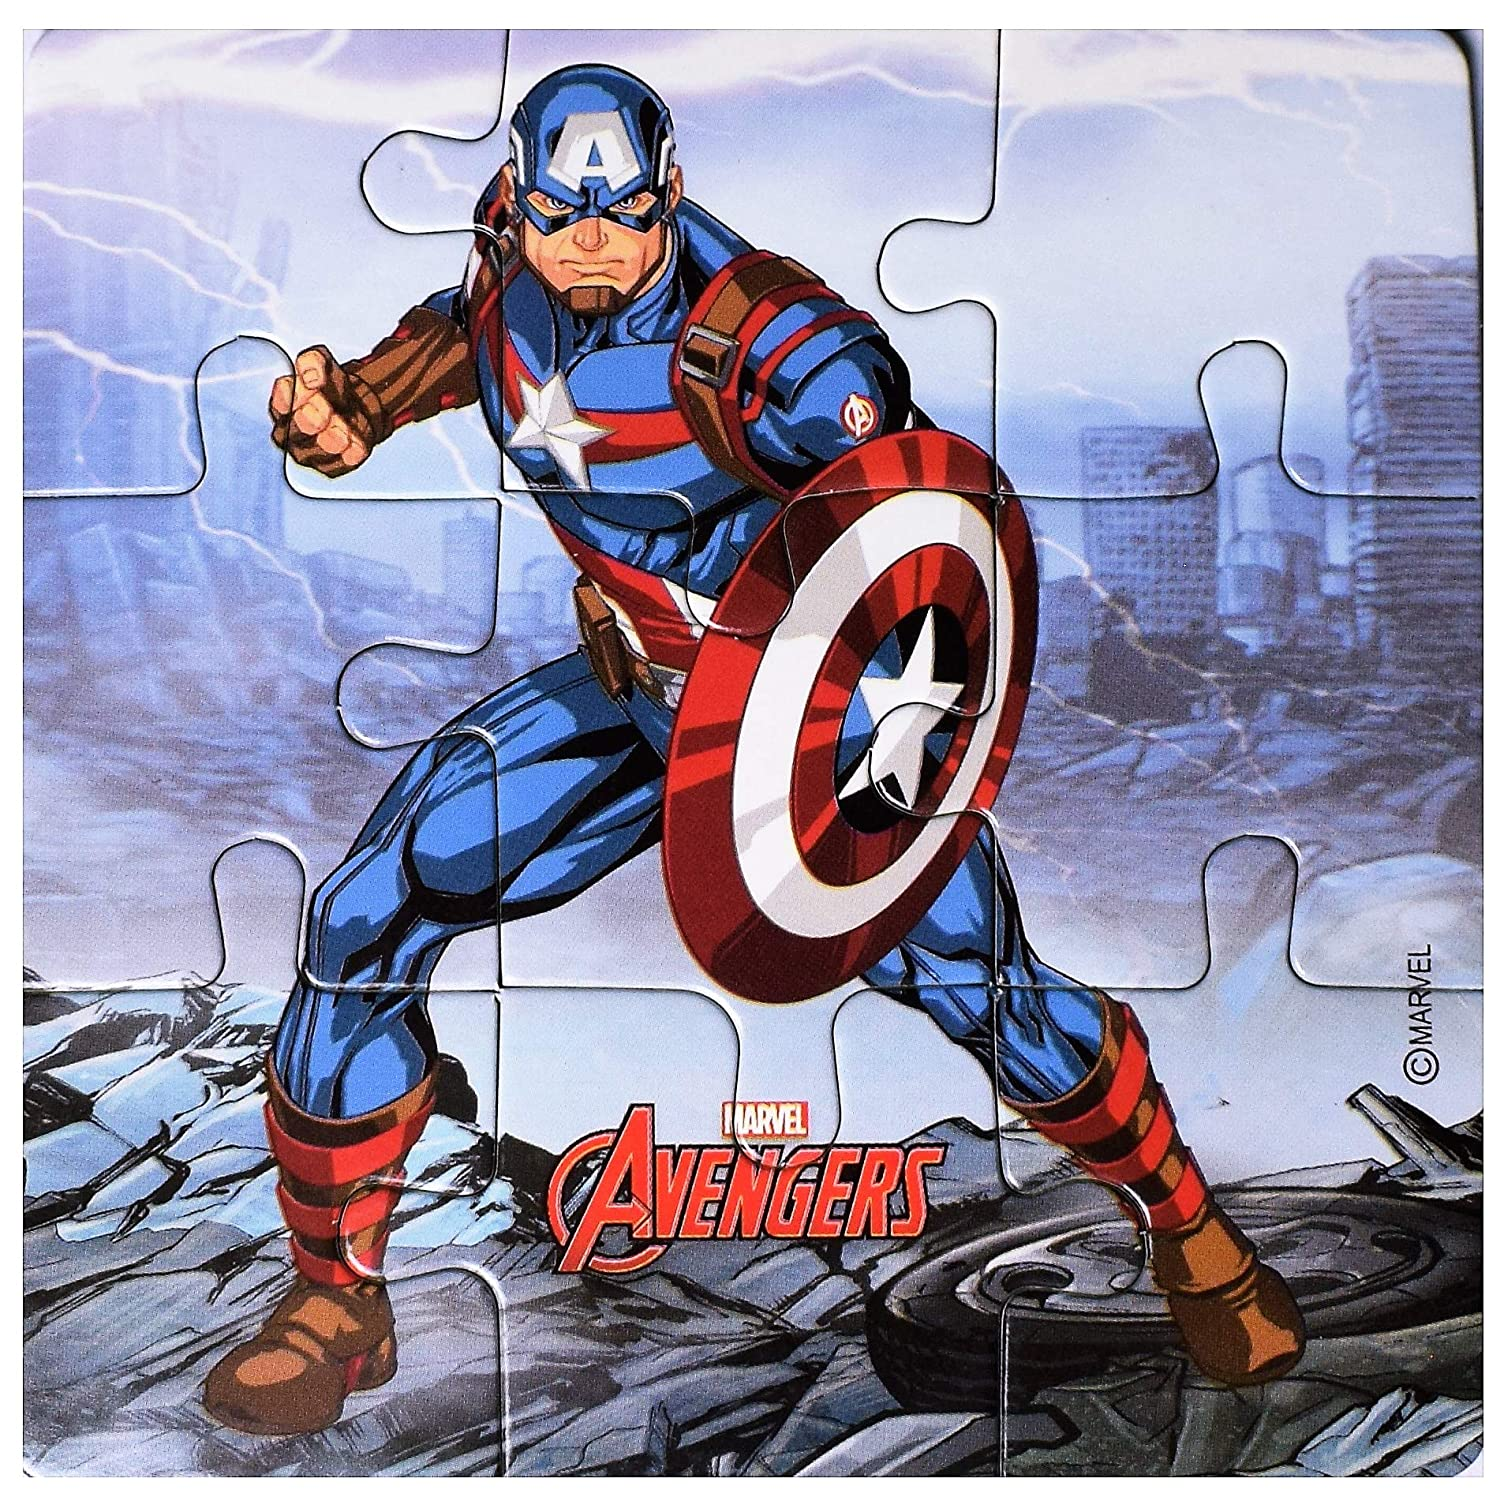 Total 45 Pieces Pack of 5 Myesha Toys Marvel Avengers Zigsaw Puzzle